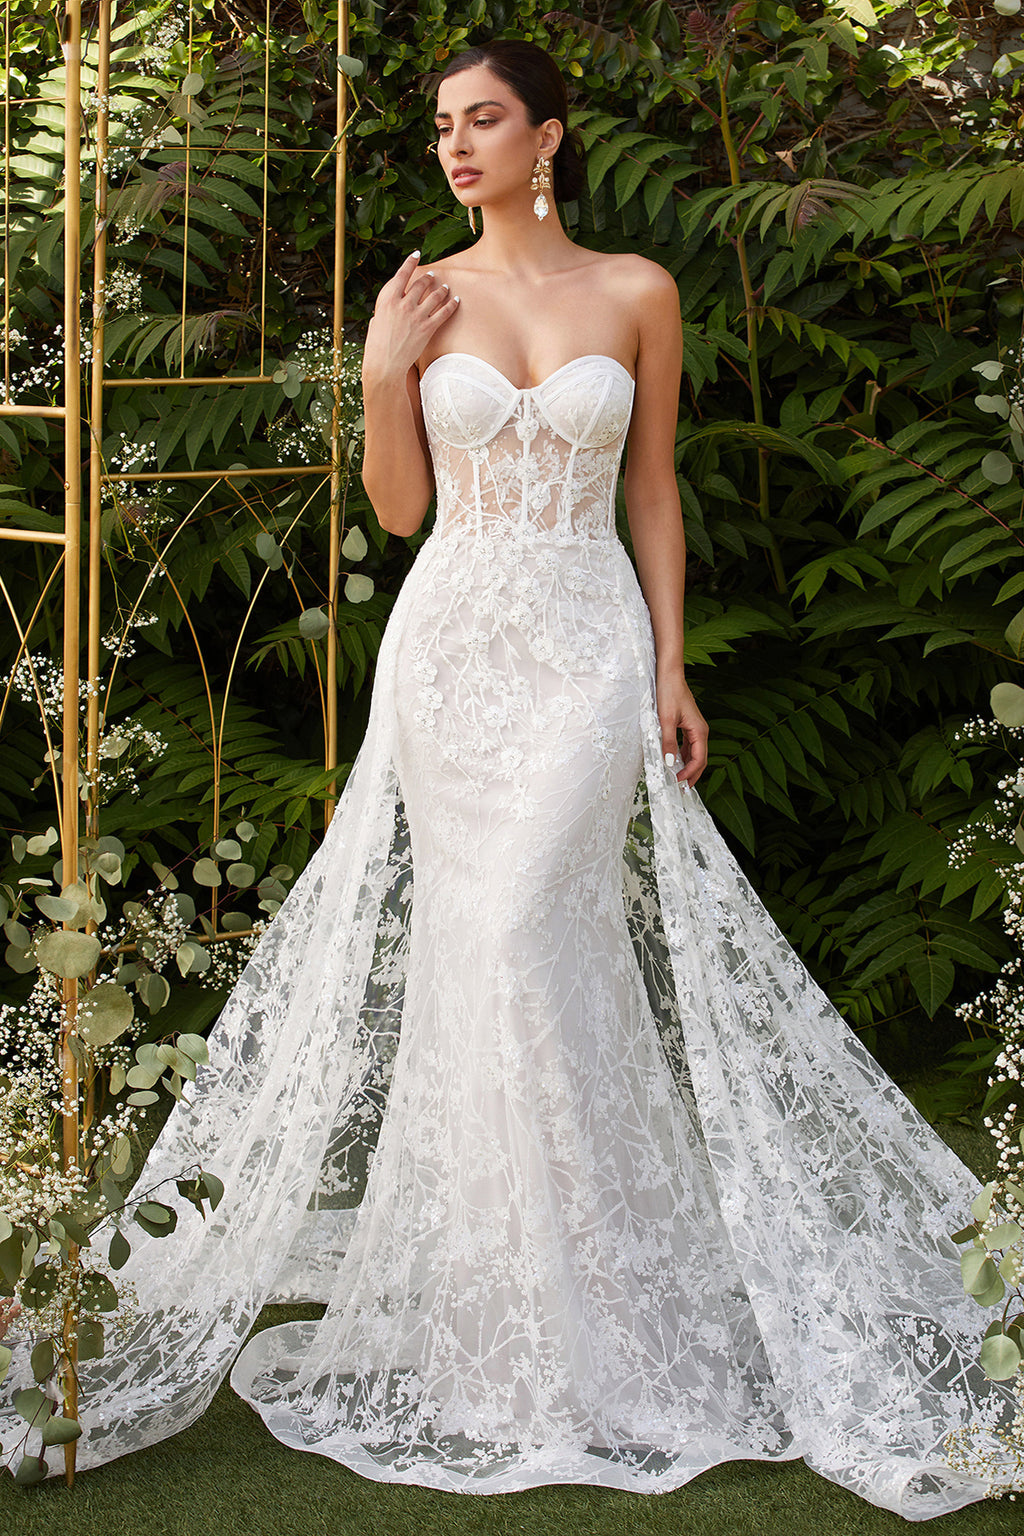 Strapless fitted off-white gown with floral applique and glitter tulle overskirt